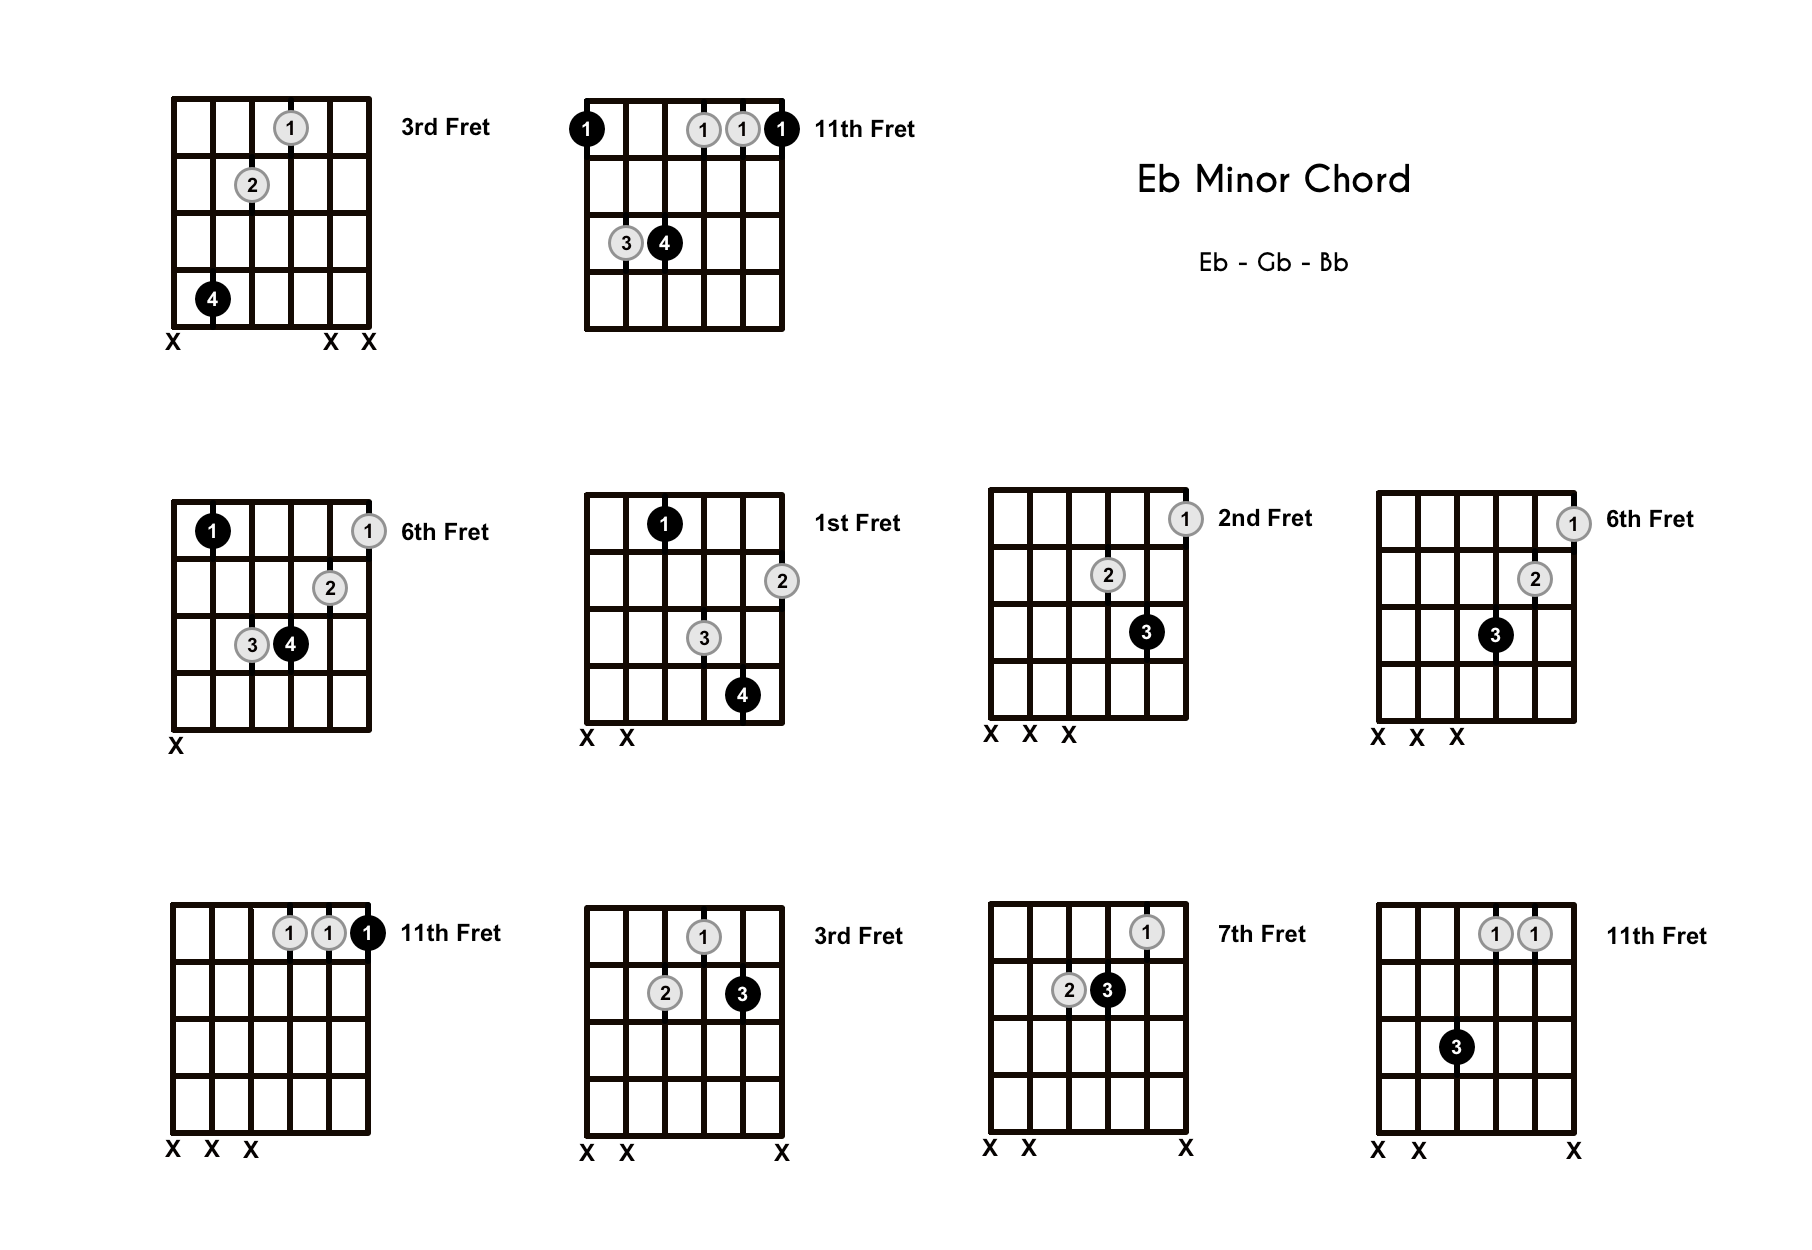 Ebm Chord on the Guitar (E Flat Minor) – Diagrams, Finger Positions, Theory